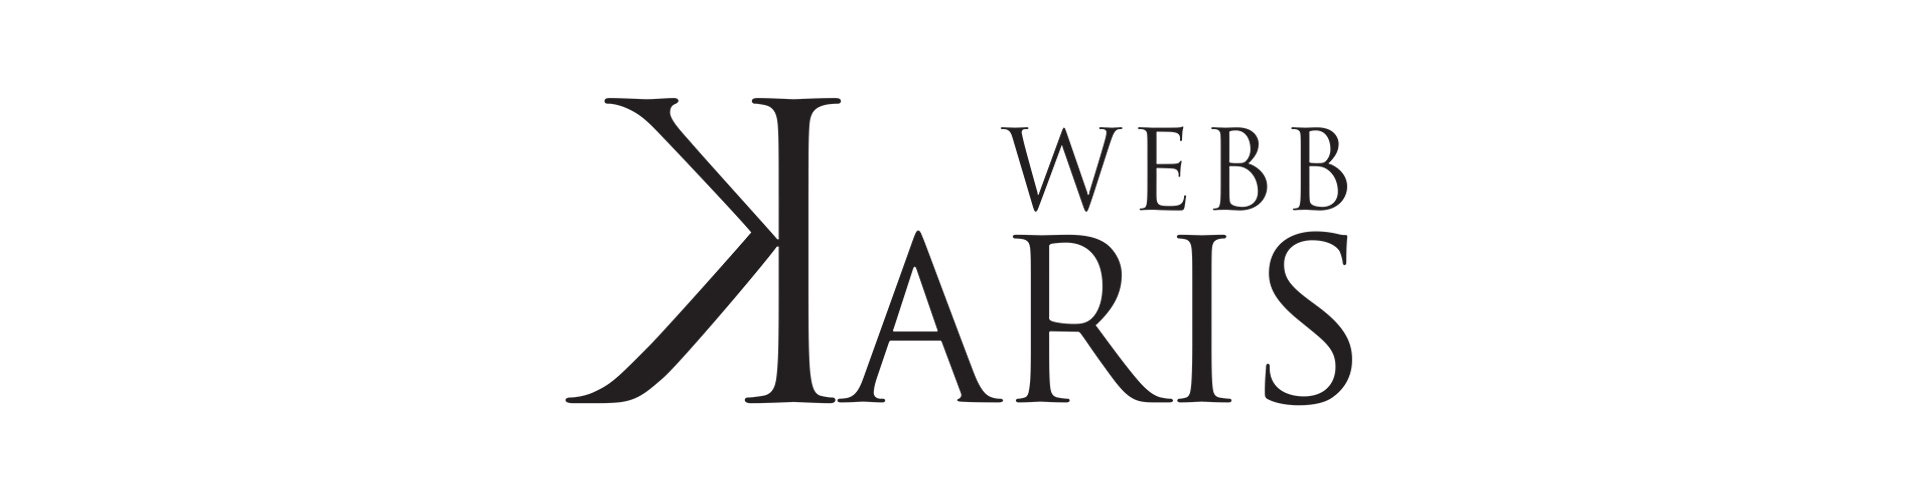 Karis Webb Logo Design